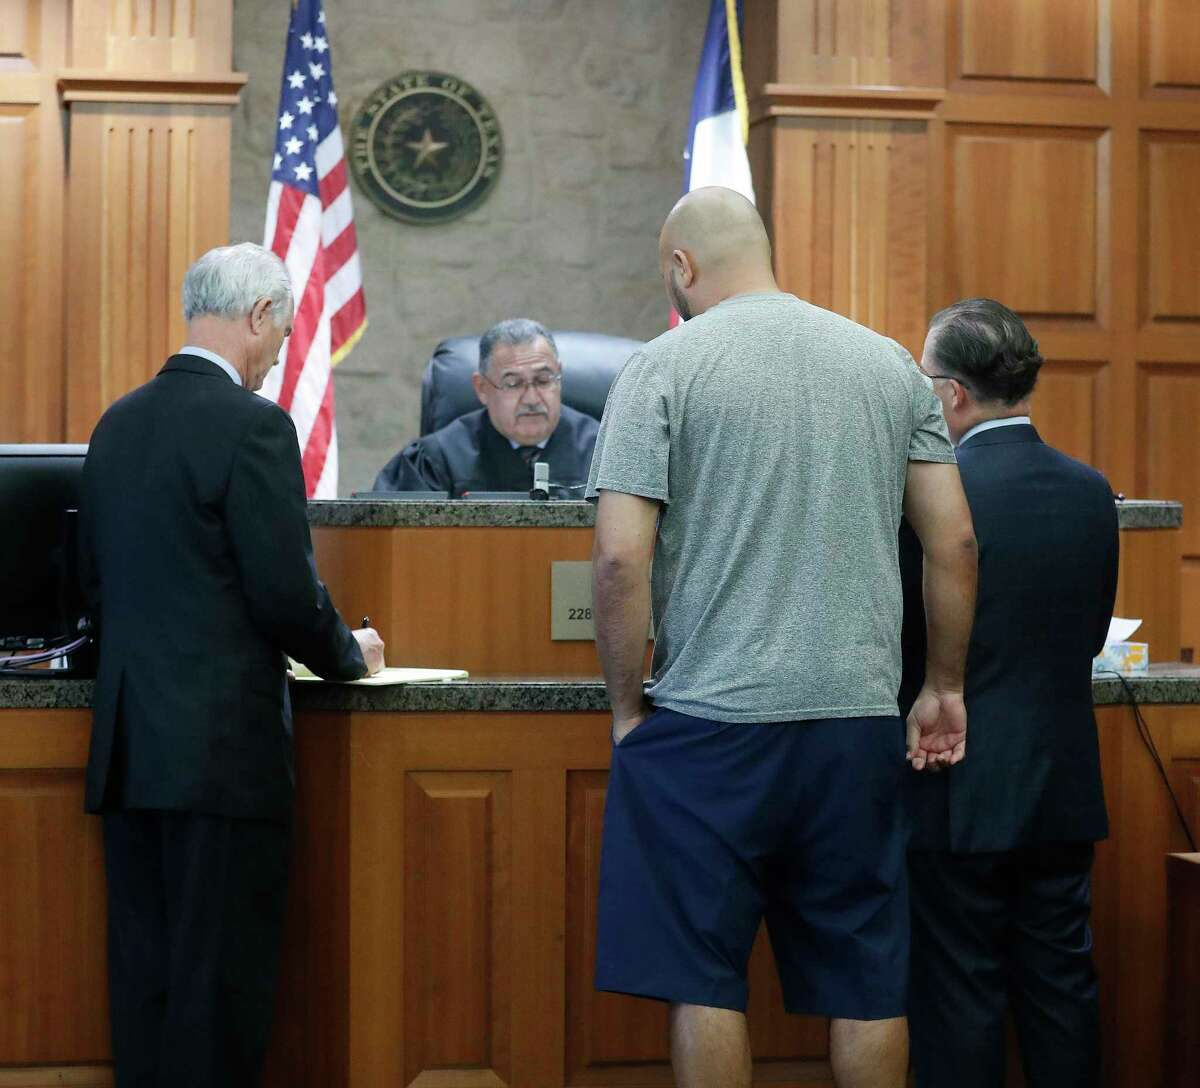 Former HPD officer Steven Bryant faces the judge as he and Gerald Goines turned themselves in at the Civil Courthouse, Friday, August 23, 2019, as charges were announced for those officers involved in the Harding Street Raid.